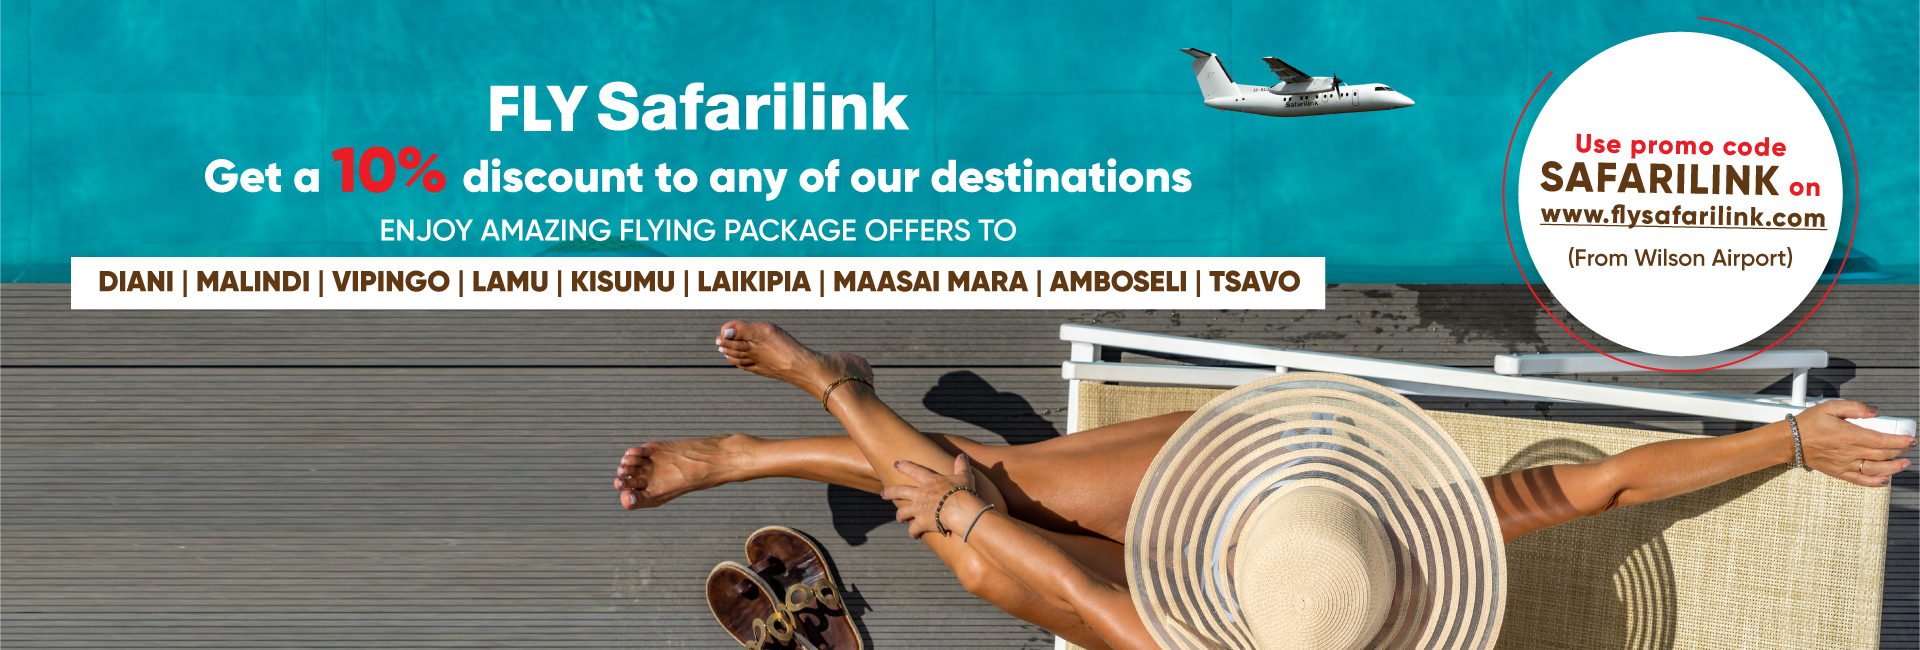 You are welcome to fly with Safarilink